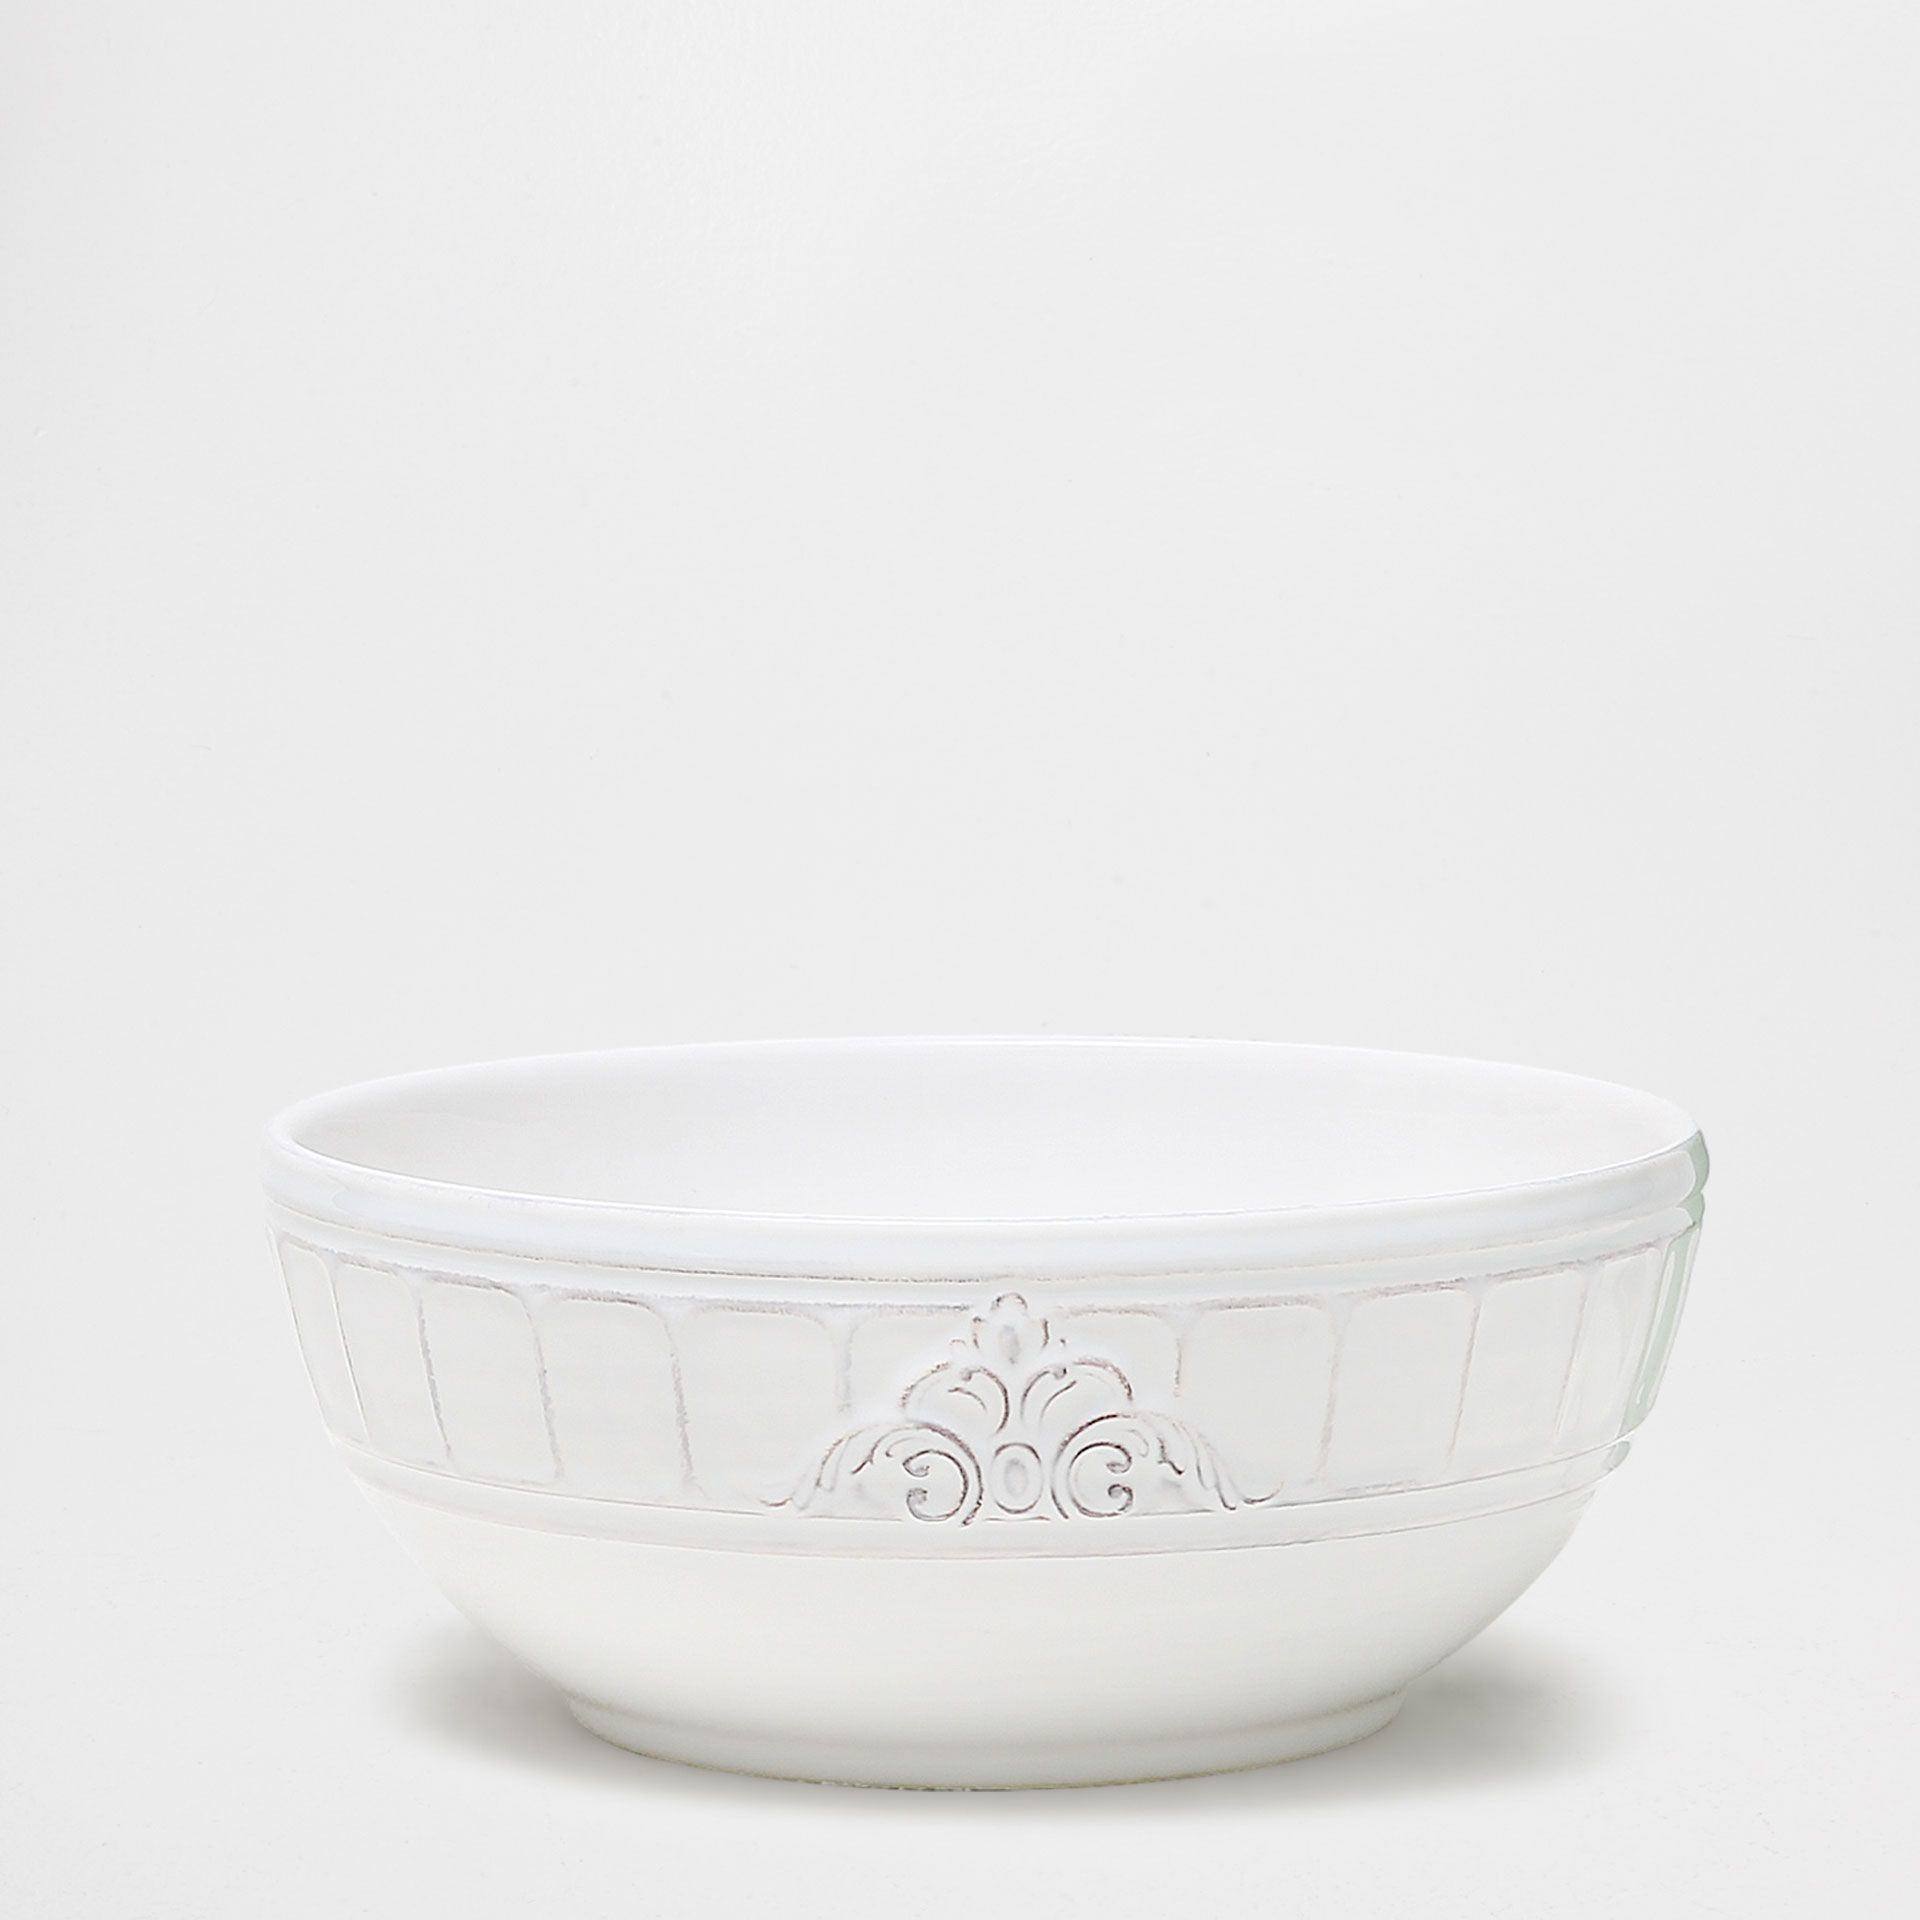 RAISED-EDGE EARTHENWARE SALAD BOWL - Serving Dishes - Tableware | Zara Home Ireland & RAISED-EDGE EARTHENWARE SALAD BOWL - Serving Dishes - Tableware ...